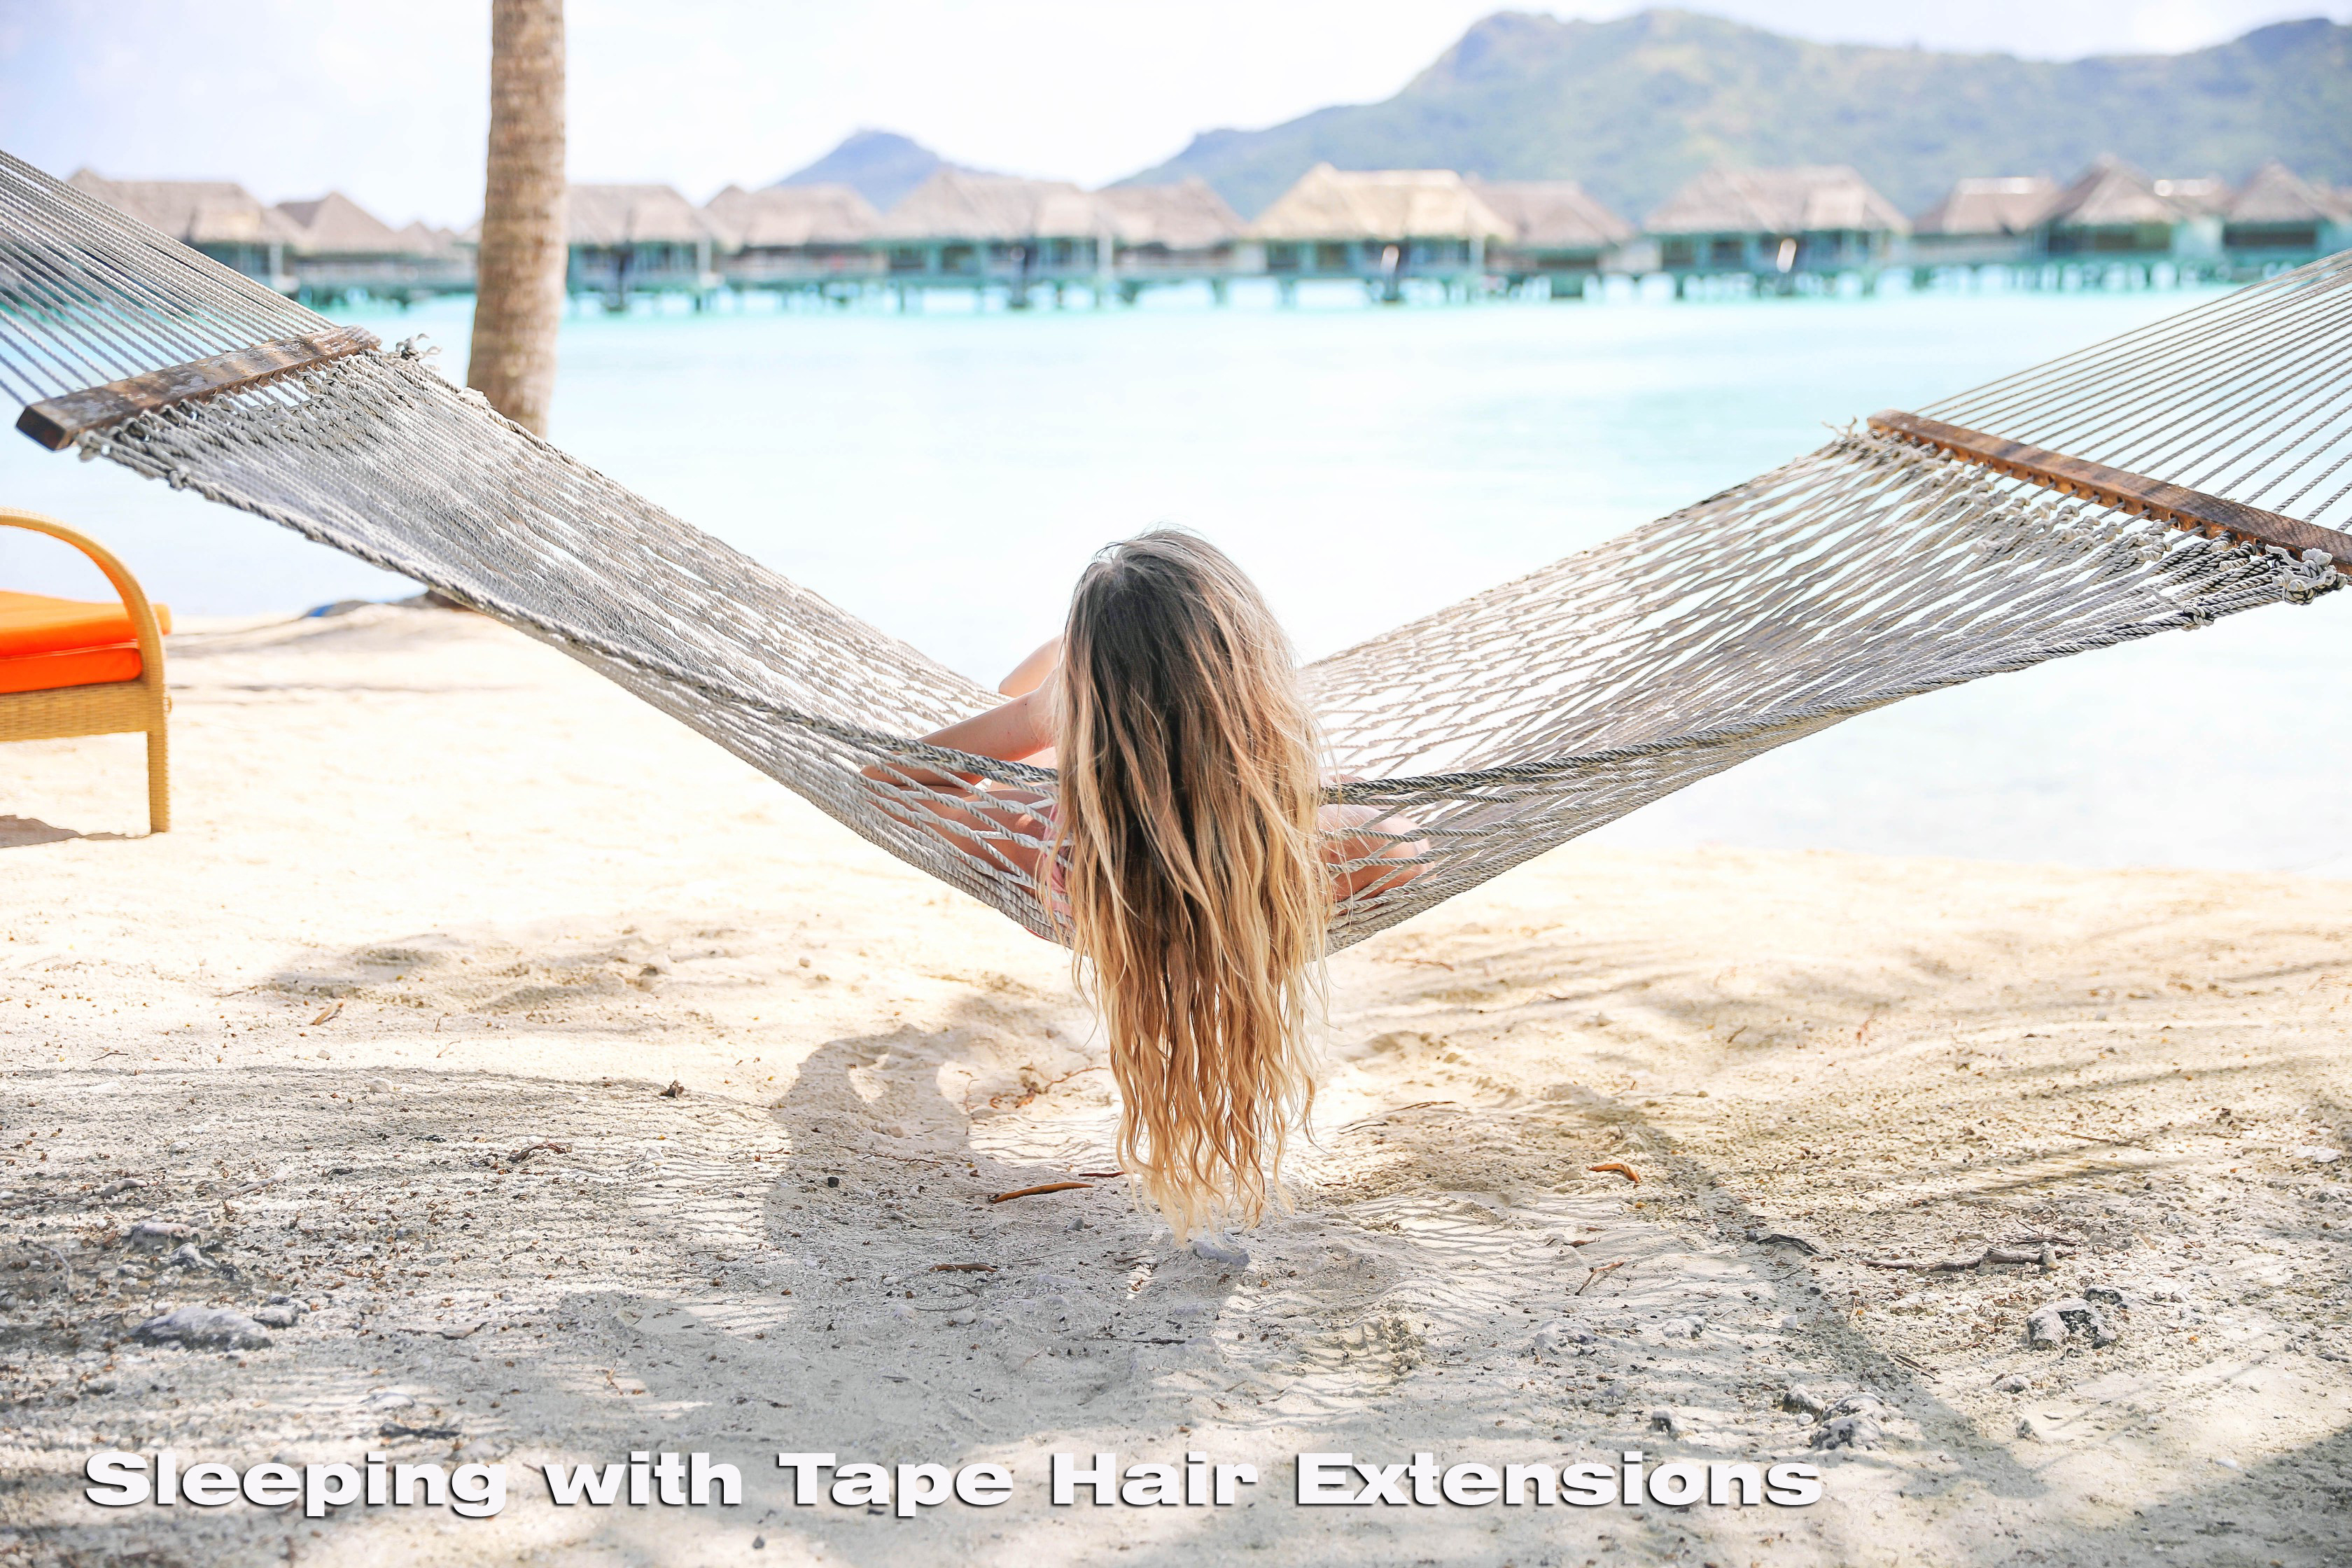 Everything You Need to Know About Sleeping with Tape Hair Extensions